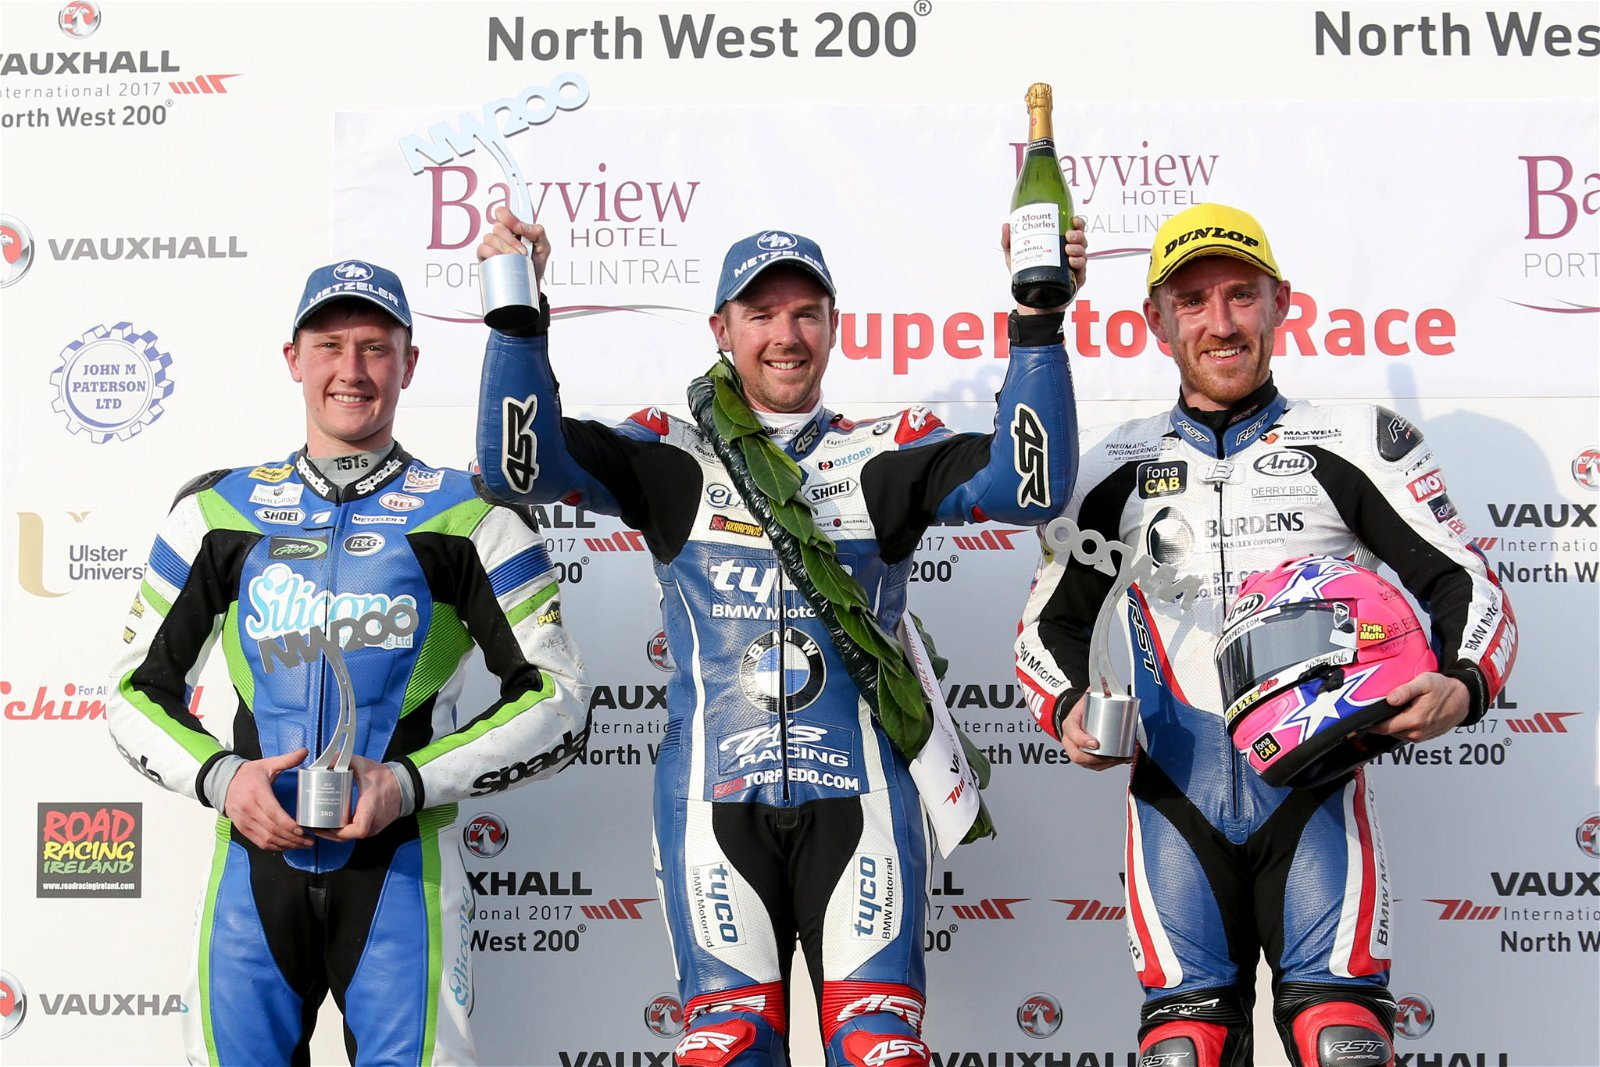 Harrison, Seeley and Johnston at North West 200 2017 credit Double Red